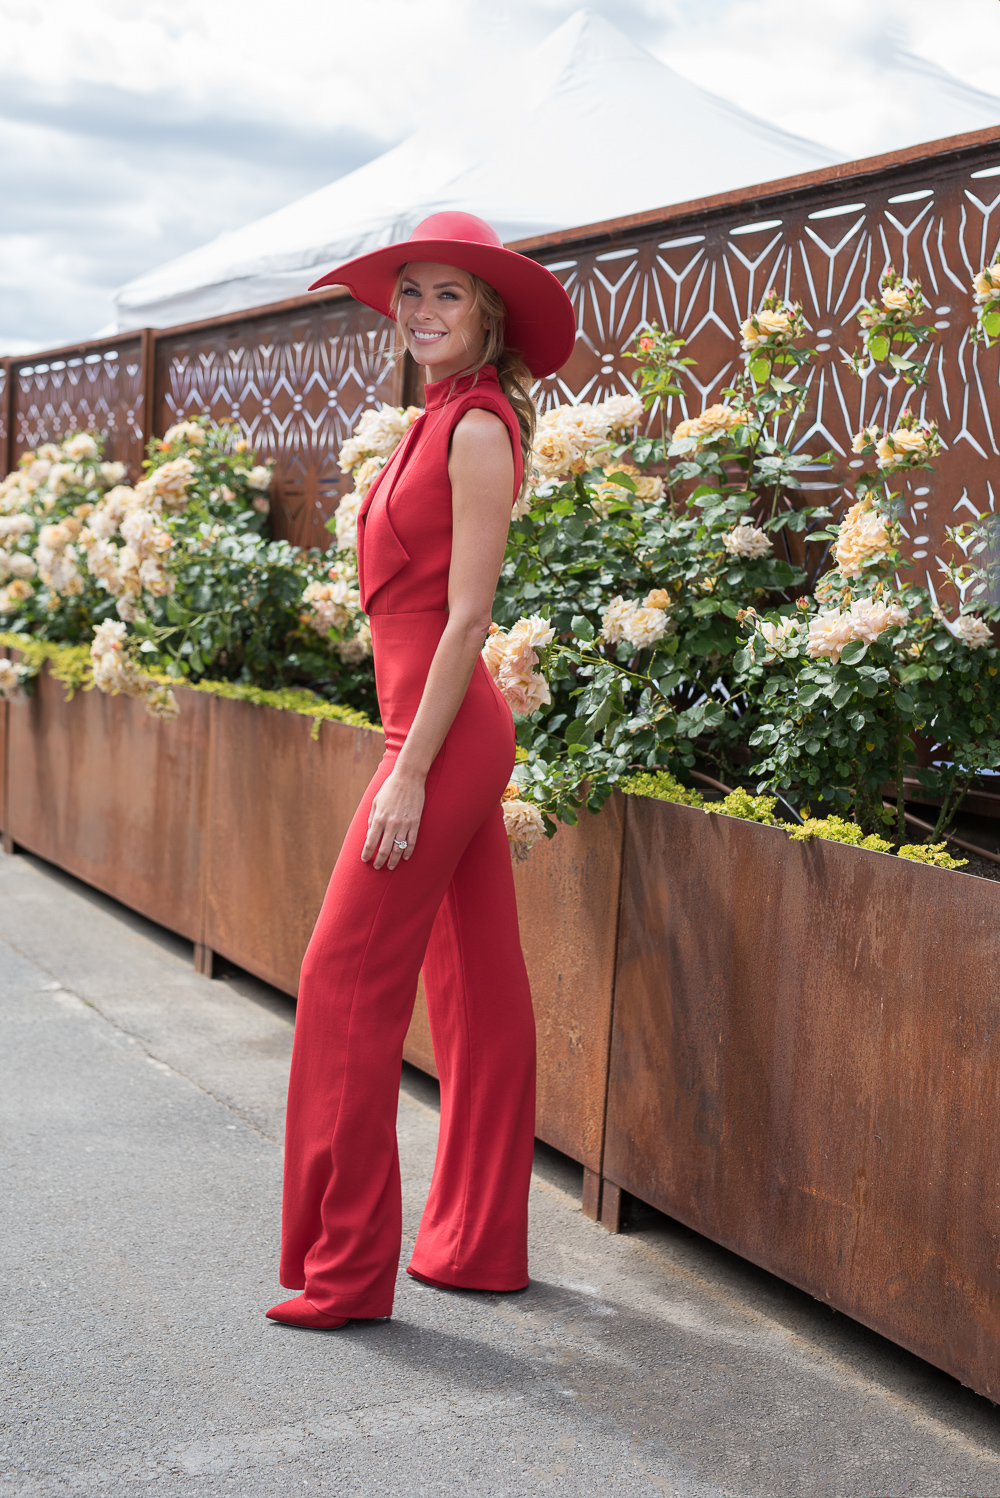 melbourne-cup-day-street-style_0040-edit